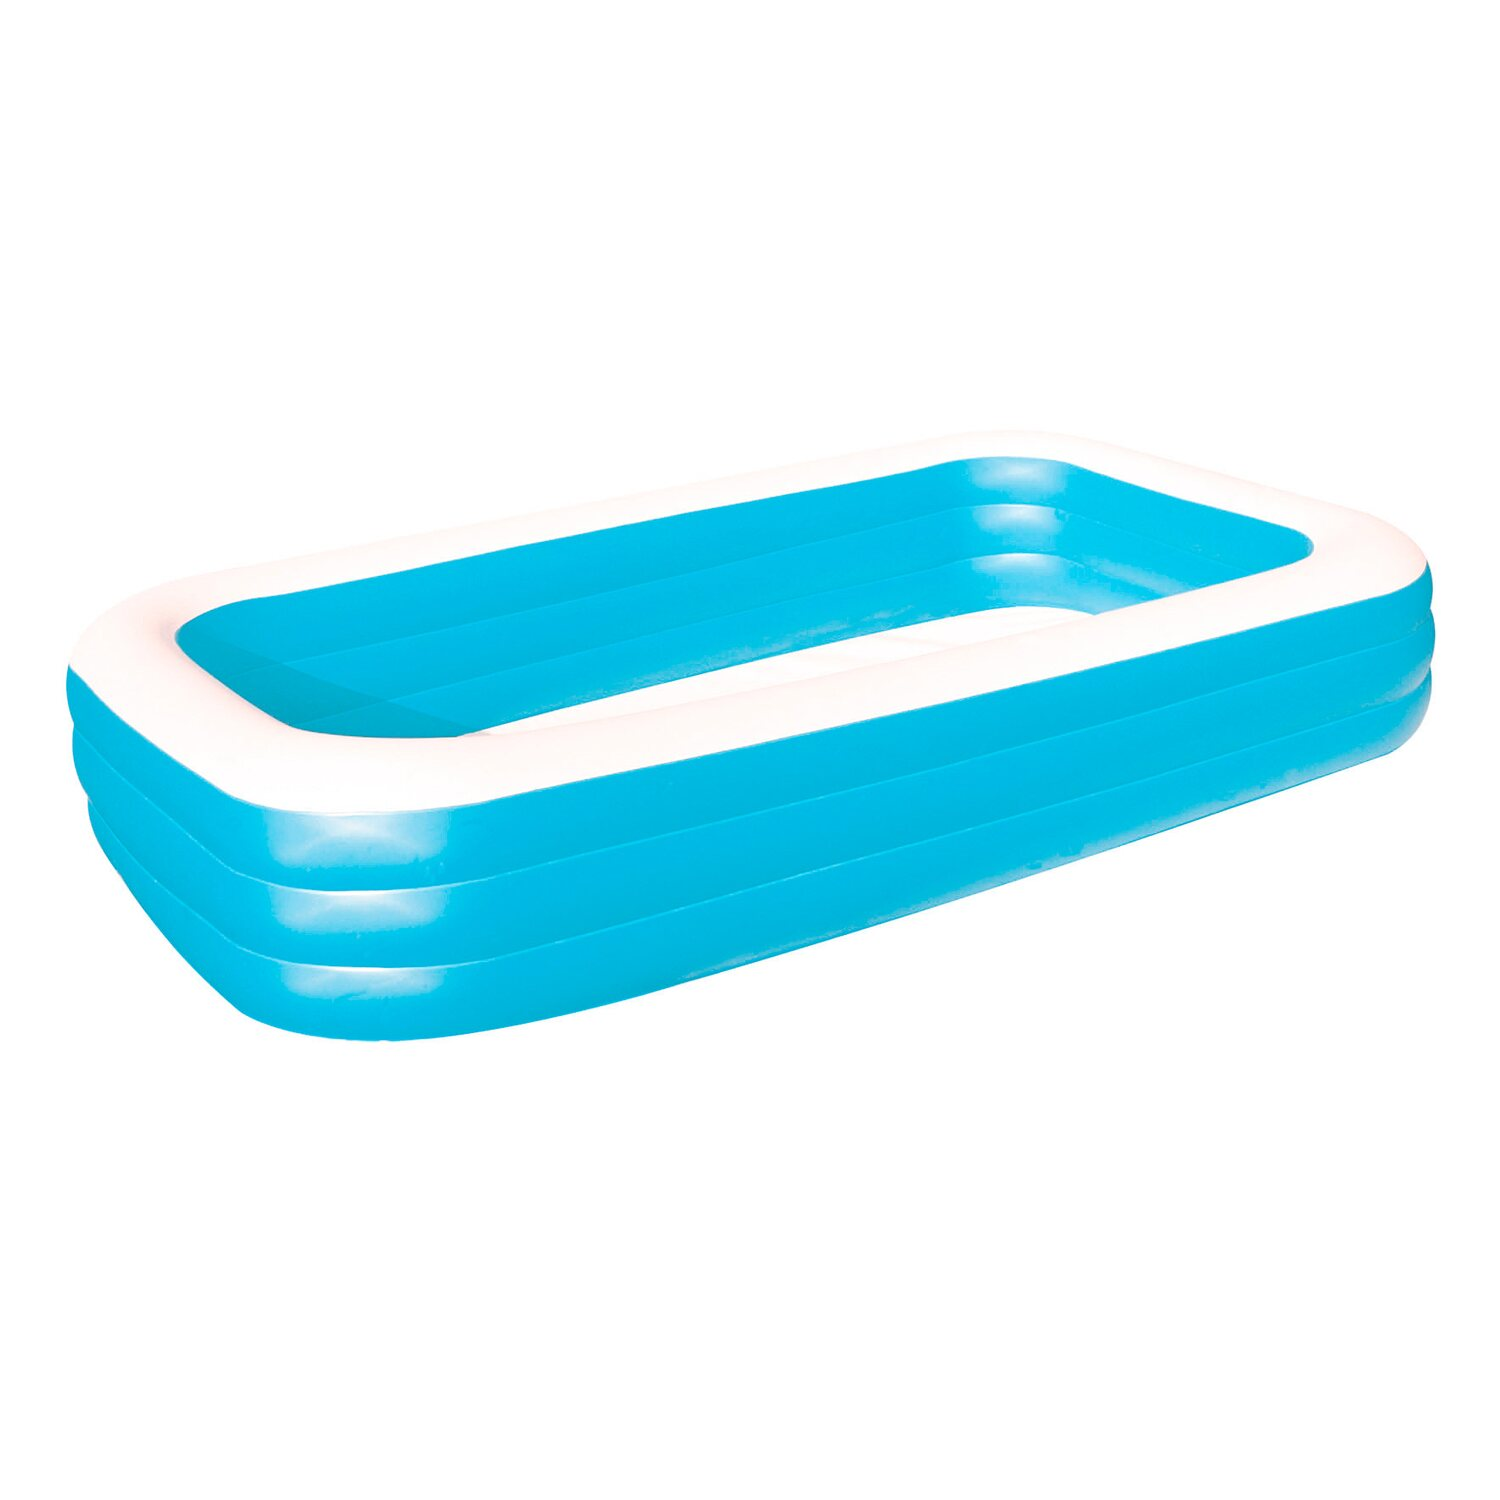 Bestway swimming pool family kaufen bei obi for Pool staubsauger obi